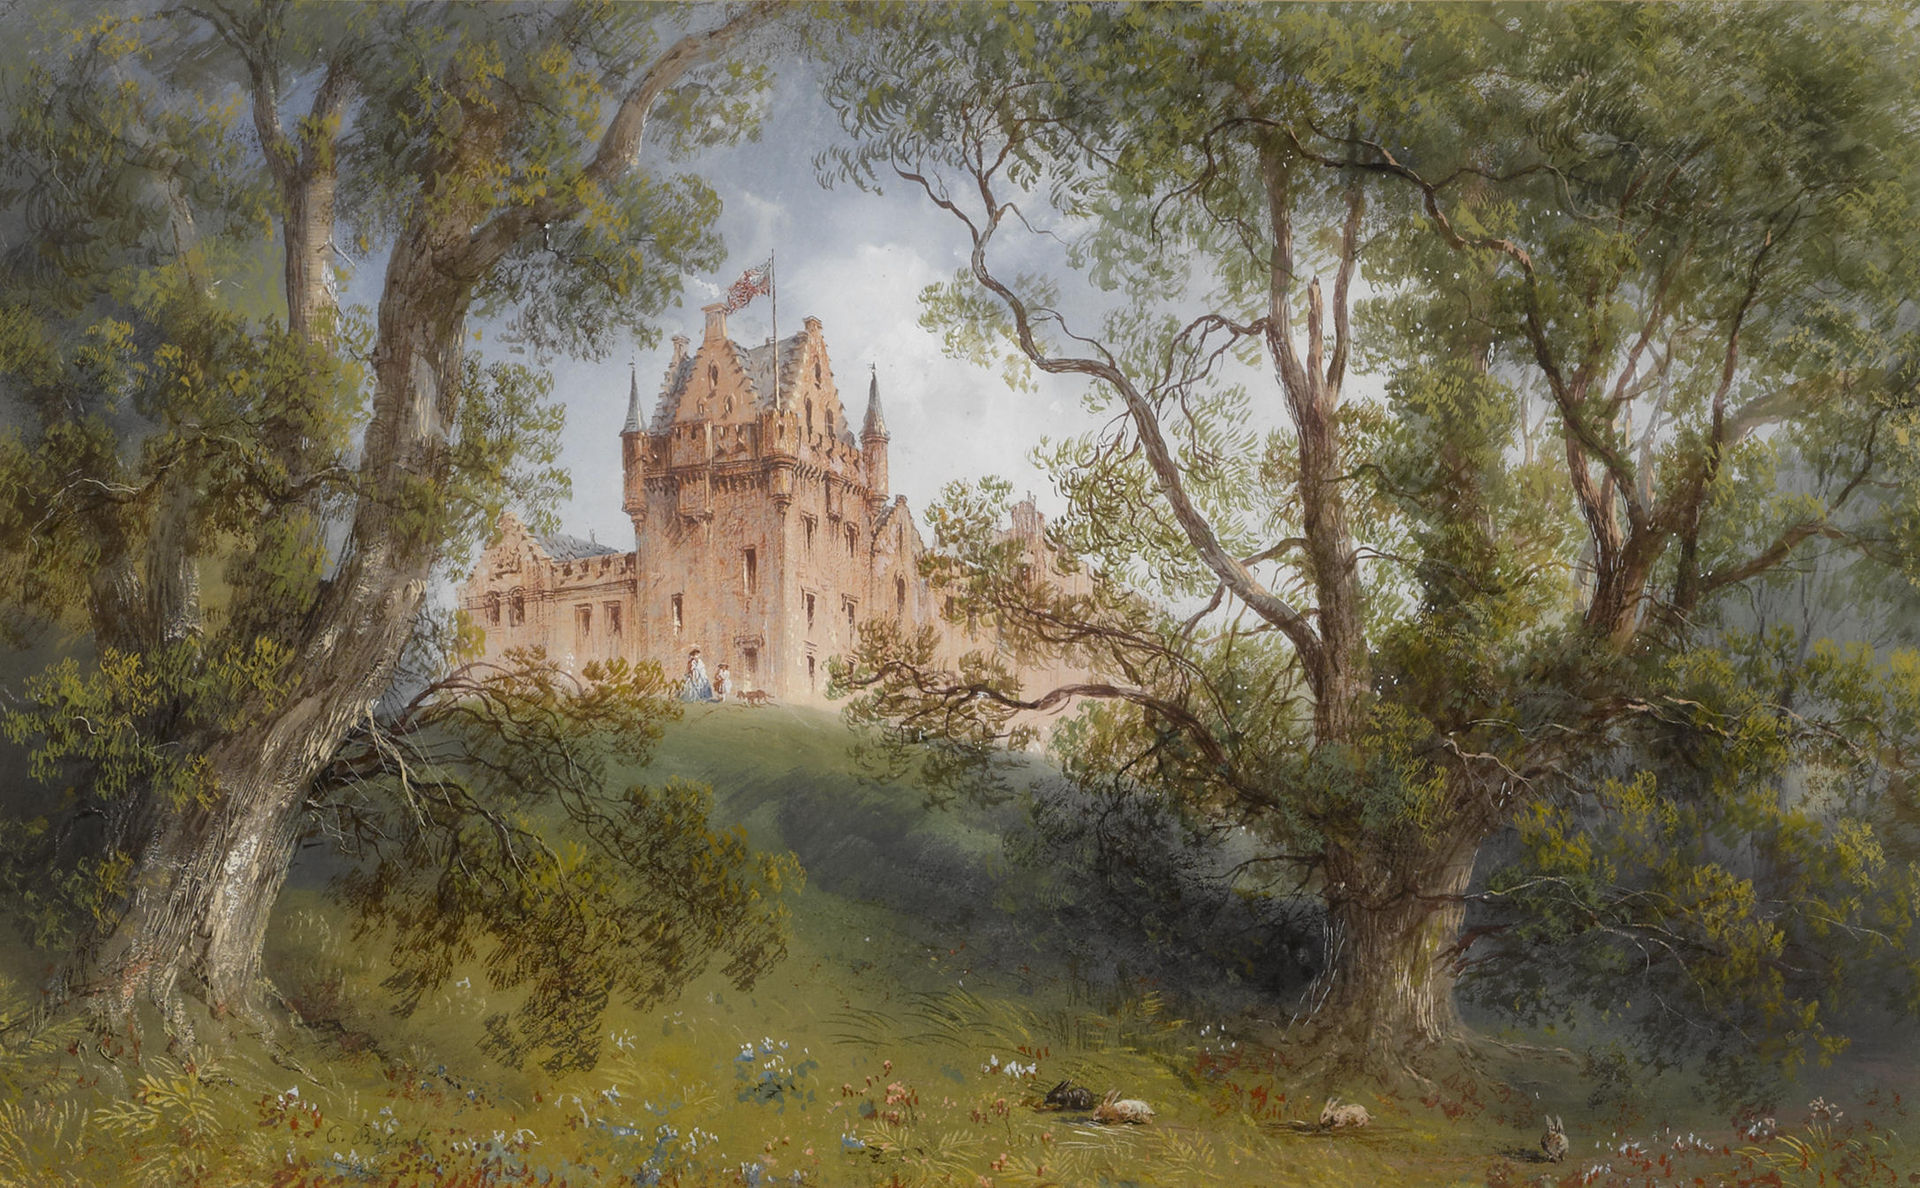 Carlo_Bossoli_-_A_view_of_Brodick_Castle,_Isle_of_Arran,_Scotland.jpg